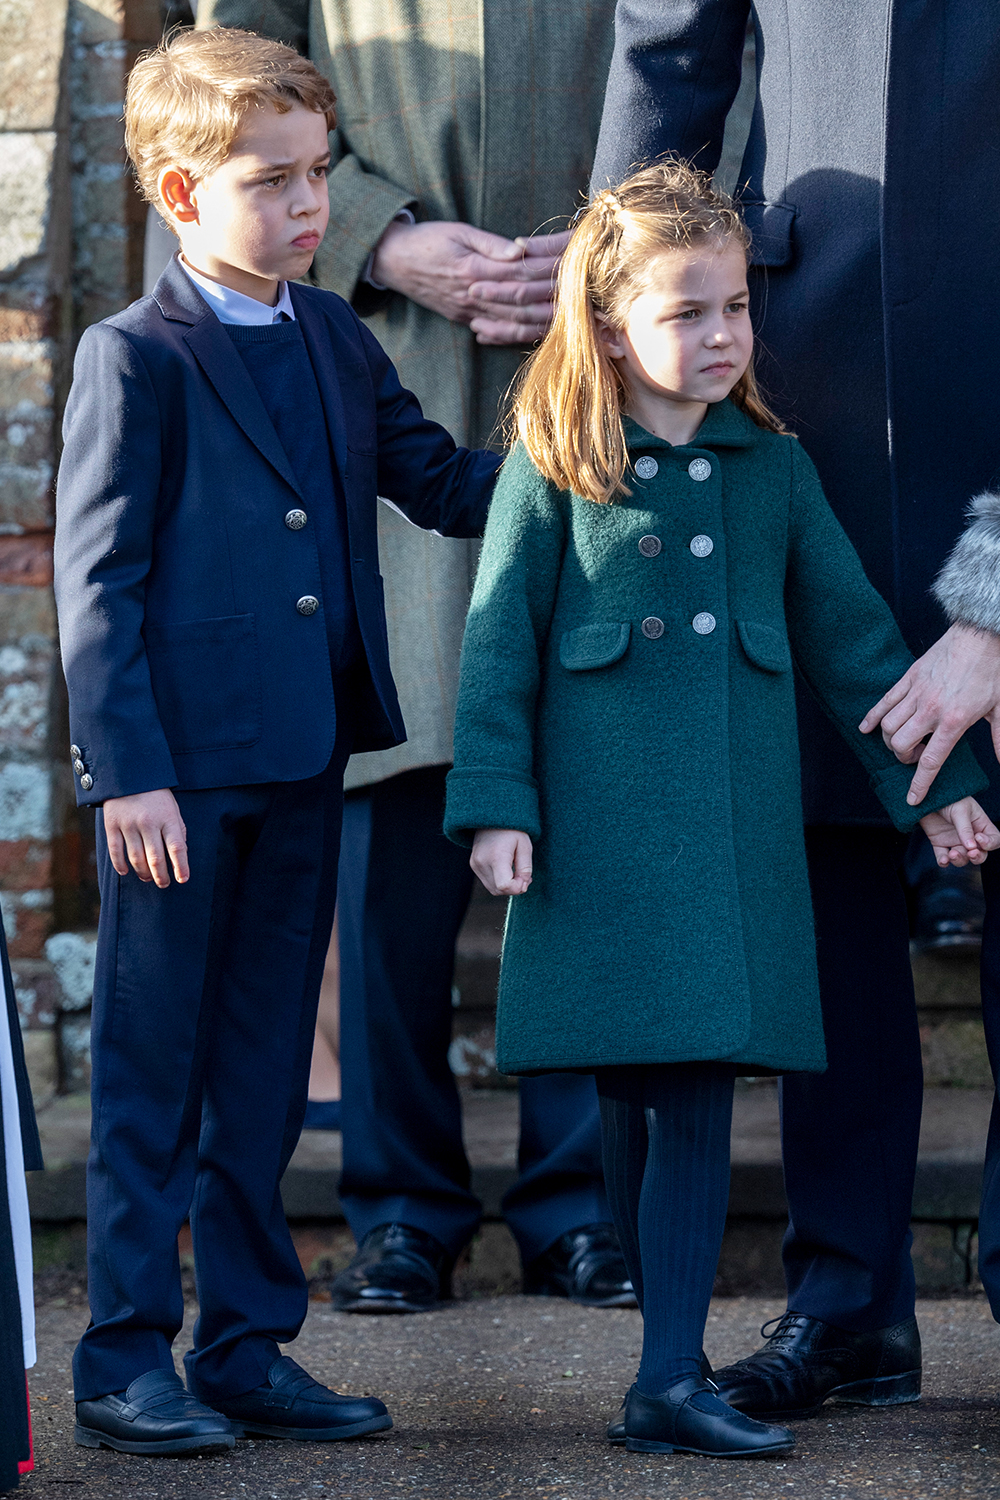 KING'S LYNN, ENGLAND - DECEMBER 25: Prince George of Cambridge and Princess Charlotte of Cambridge attend the Christmas Day Church service at Church of St Mary Magdalene on the Sandringham estate on December 25, 2019 in King's Lynn, United Kingdom. (Photo by Mark Cuthbert/UK Press via Getty Images)